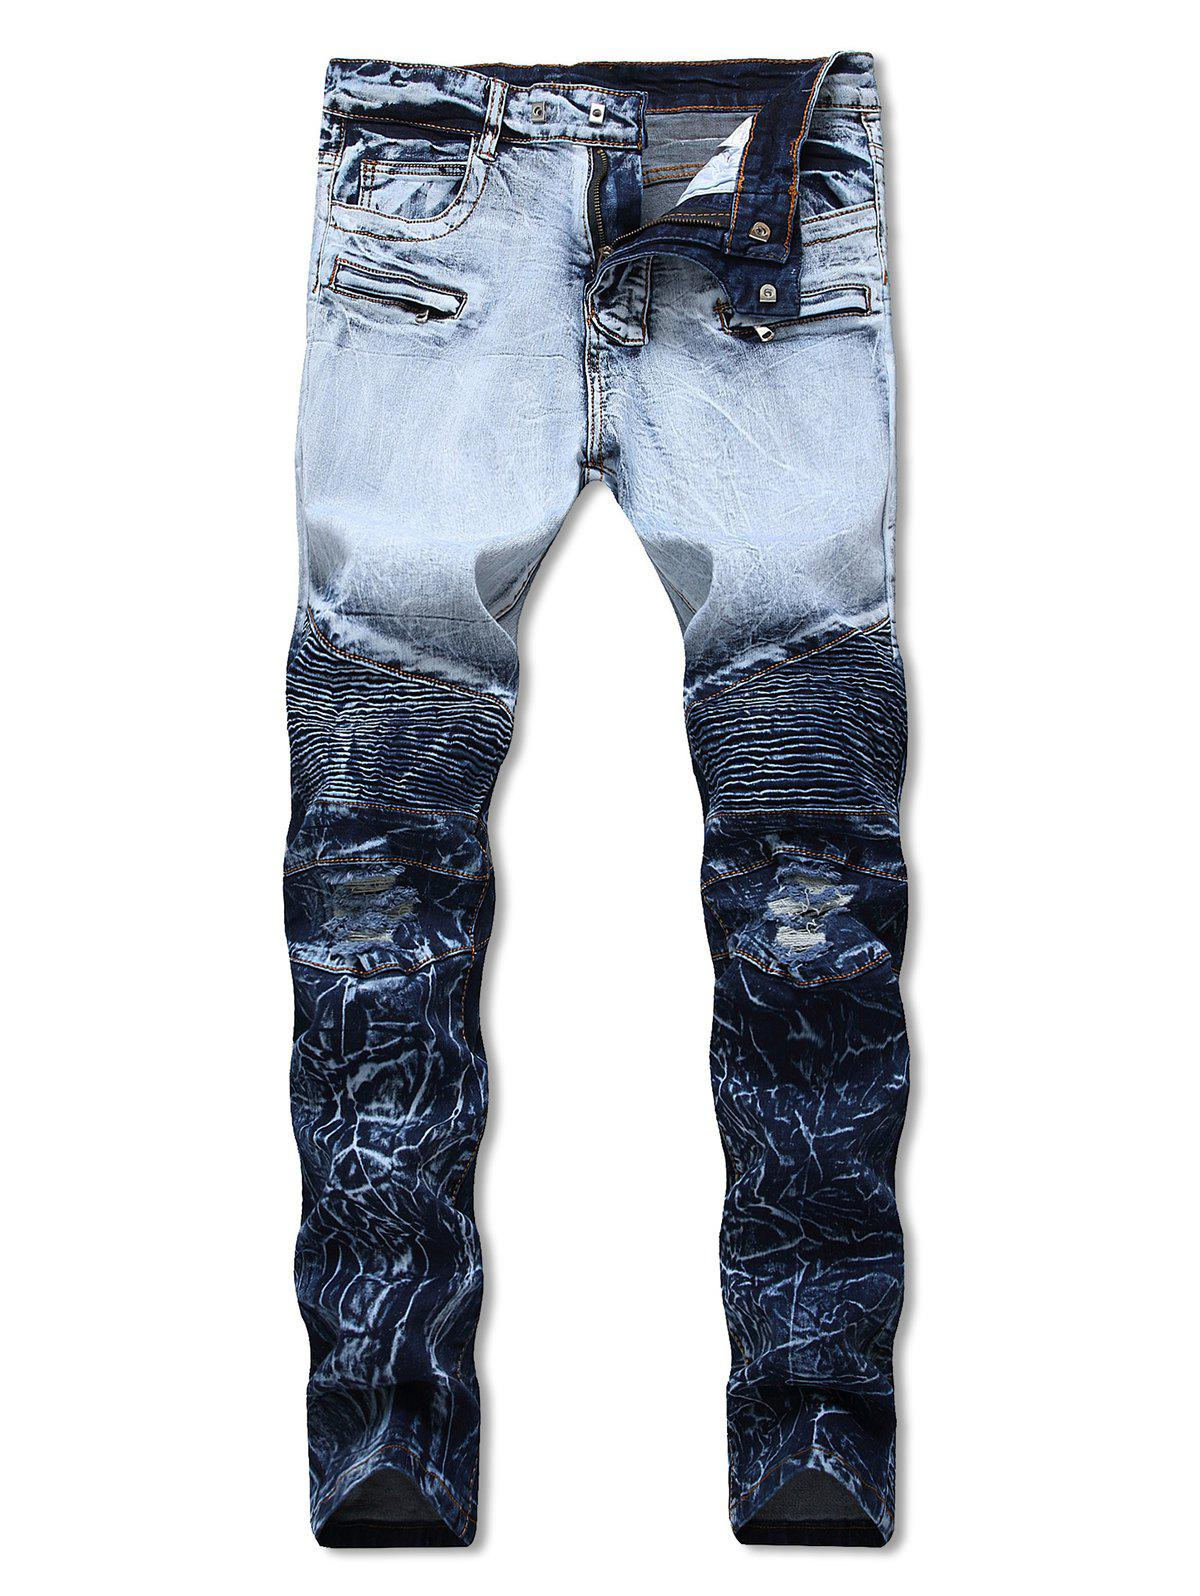 Buy Covered Zippers Pleated Motorcycle Jeans